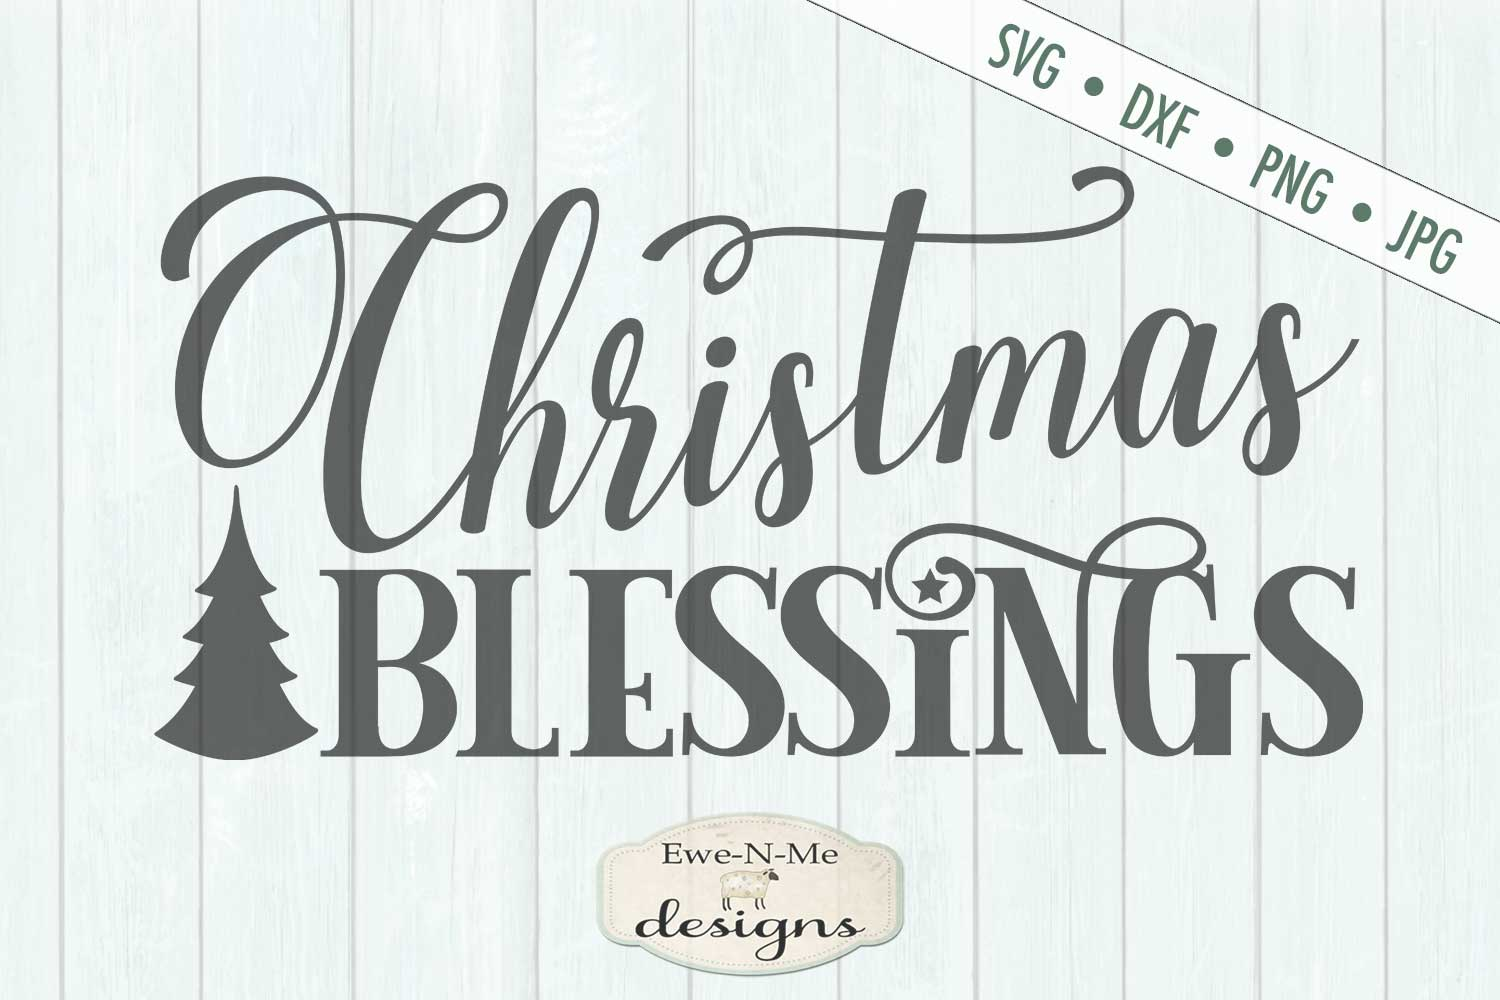 Christmas Blessings - Tree - SVG DXF Files example image 2